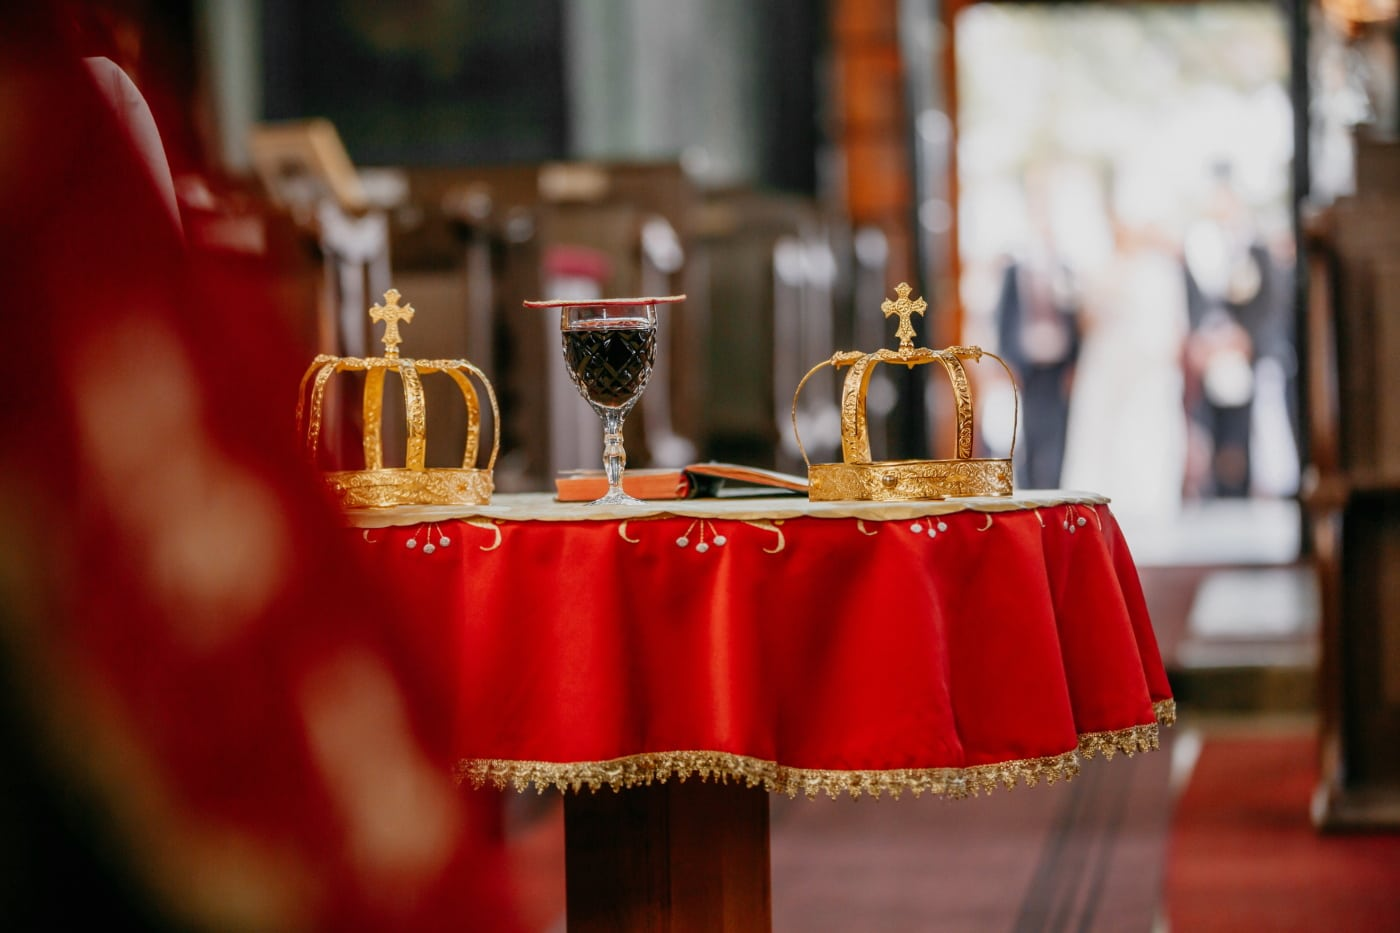 wedding, coronation, religious, tradition, gold, crowd, red wine, church, ceremony, interior design